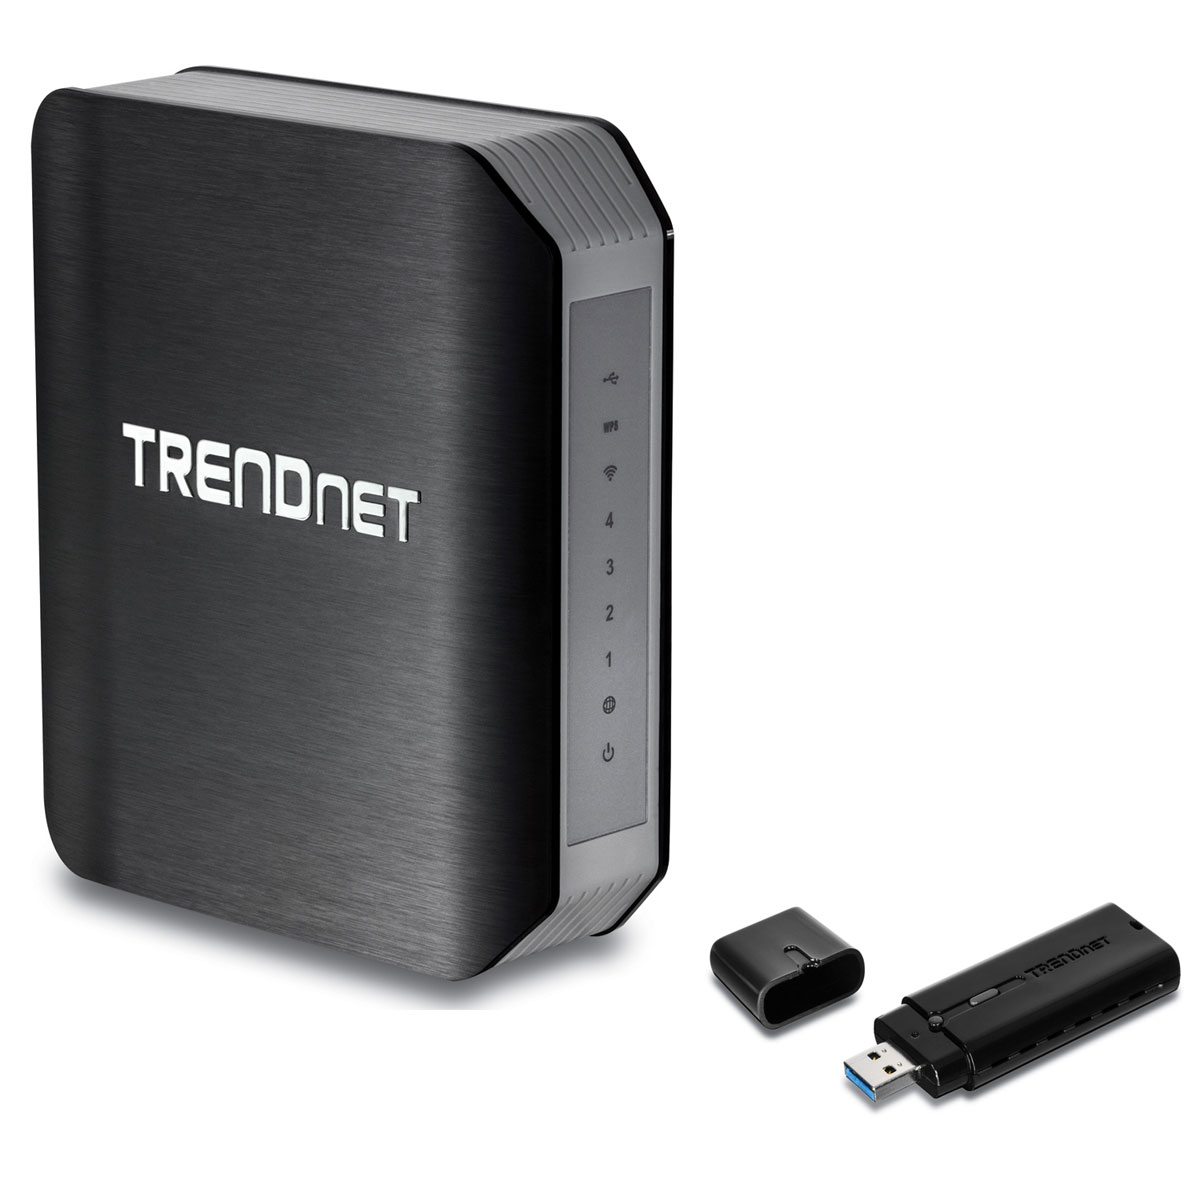 trendnet tew 812dru cl usb wi fi ac 1200 mbps modem. Black Bedroom Furniture Sets. Home Design Ideas